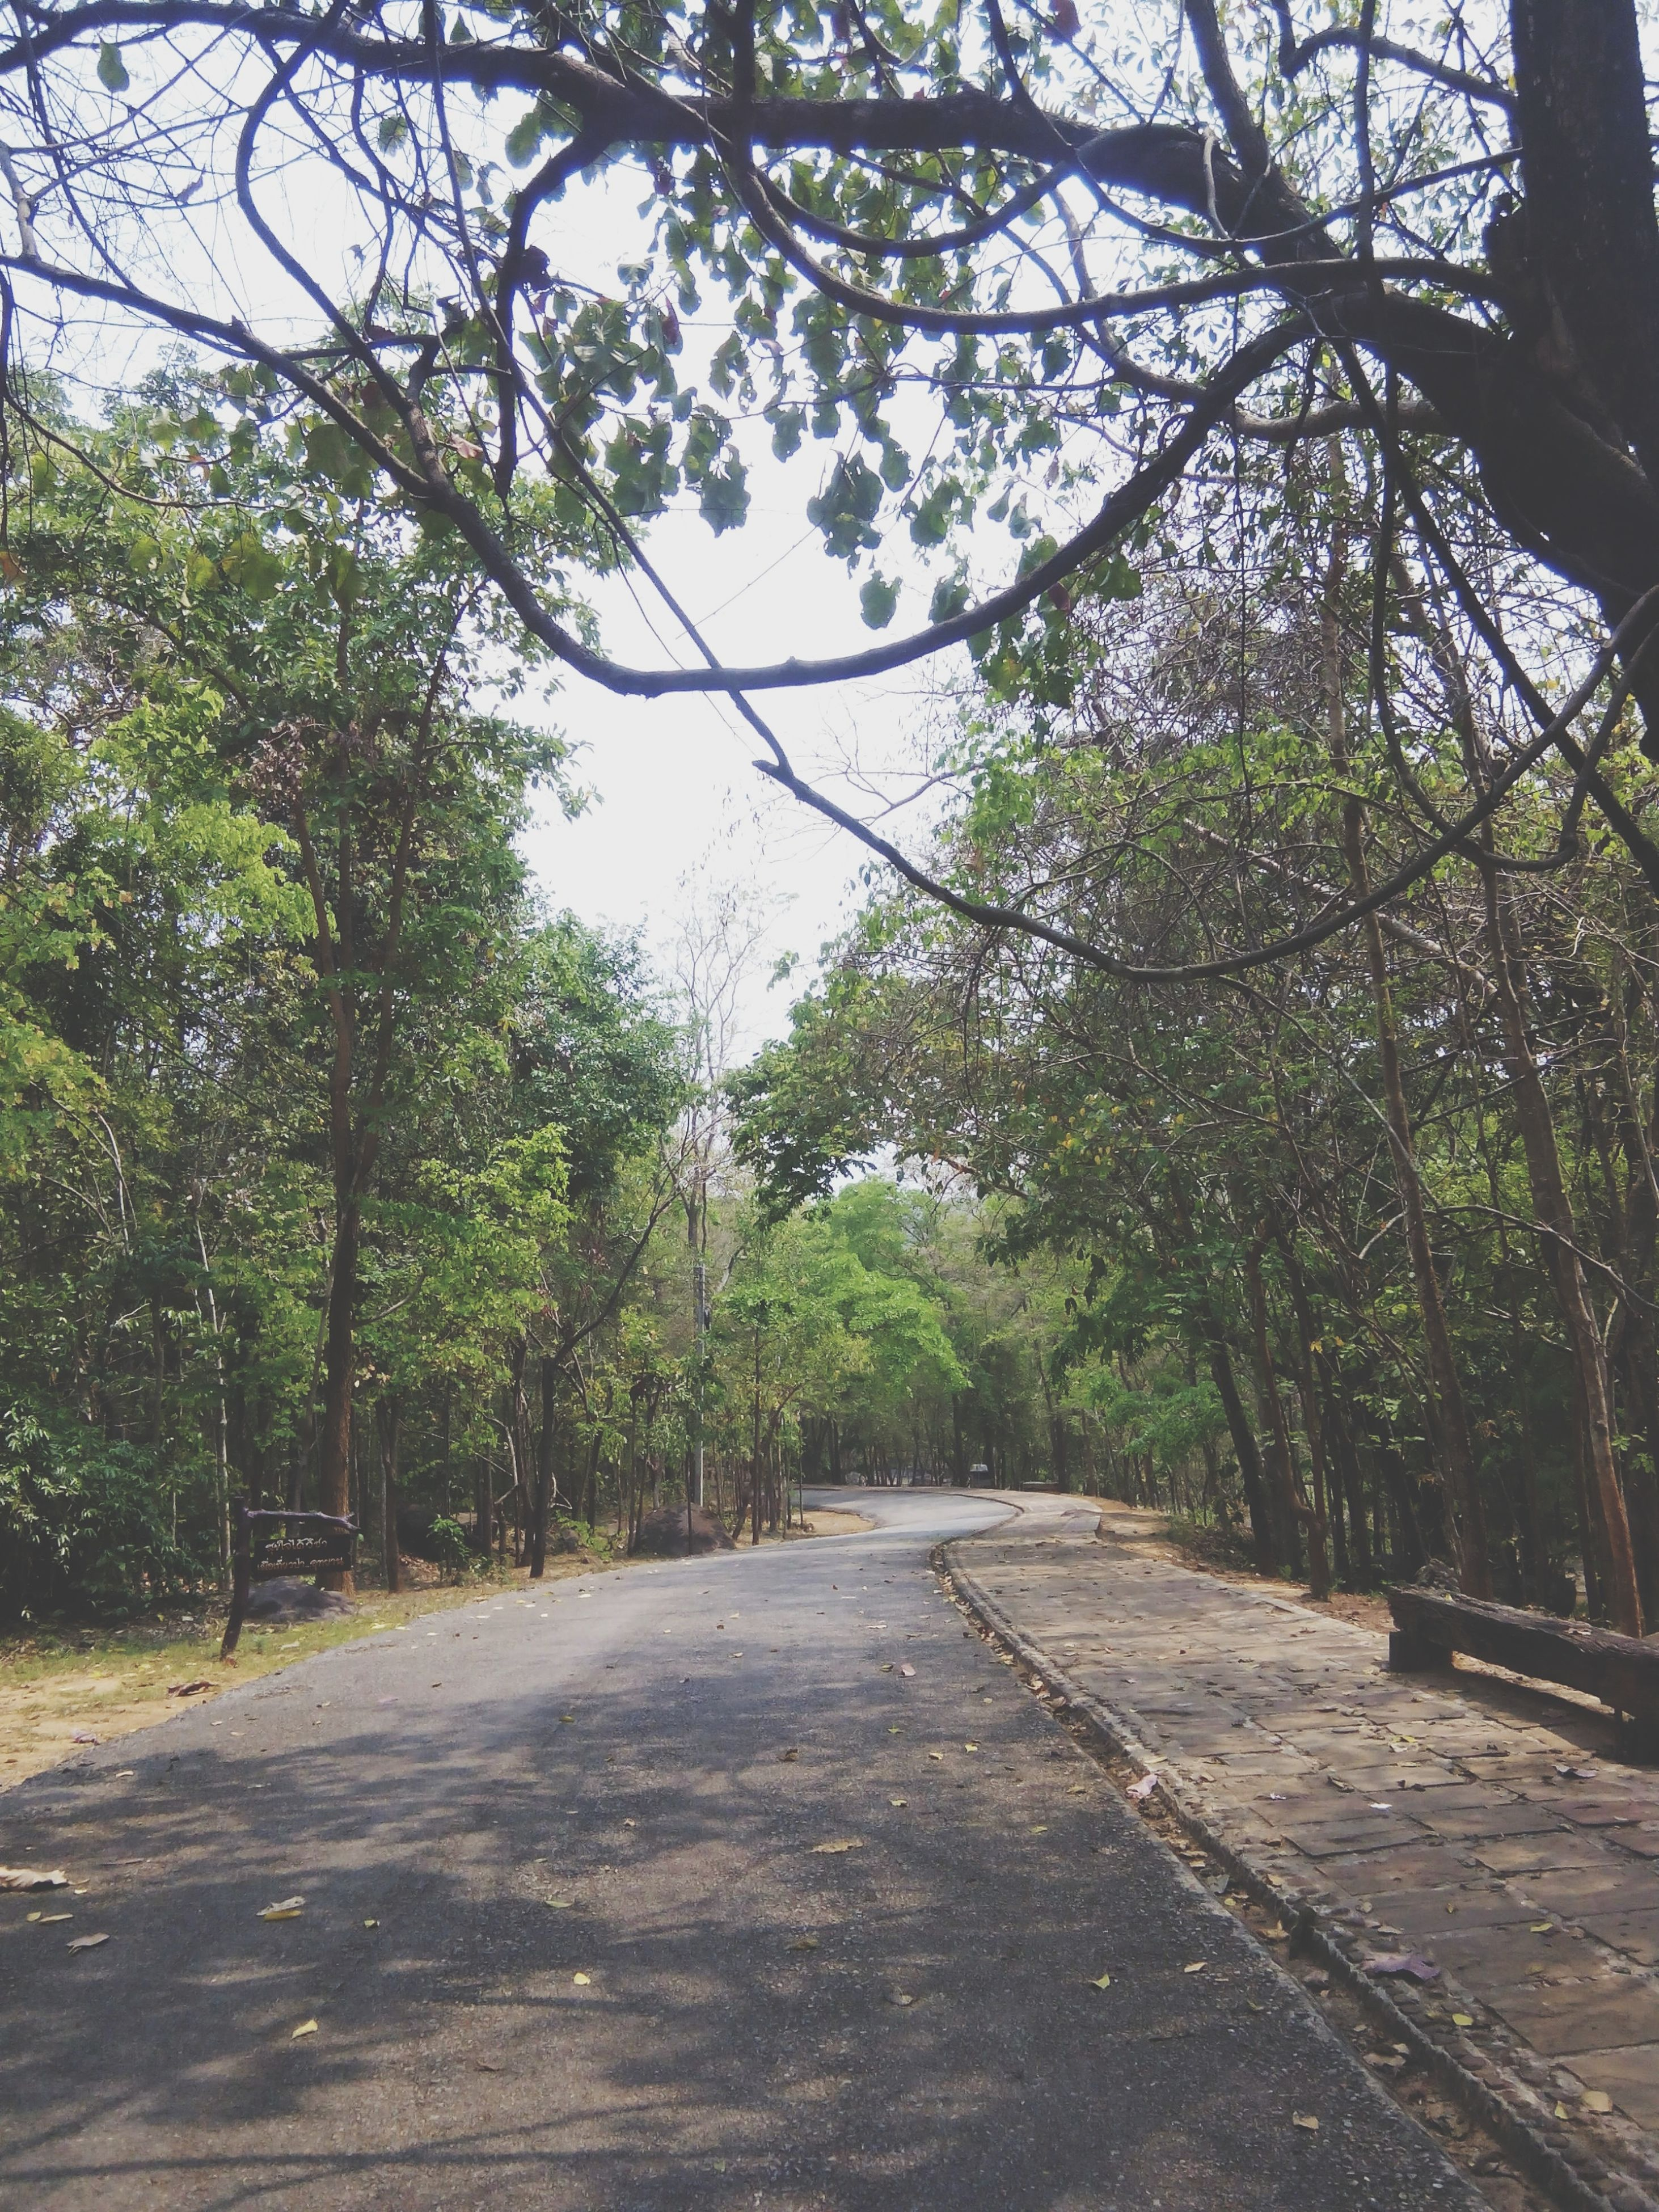 tree, the way forward, growth, road, branch, tranquility, nature, green color, footpath, tranquil scene, diminishing perspective, transportation, beauty in nature, street, tree trunk, day, outdoors, vanishing point, scenics, sunlight